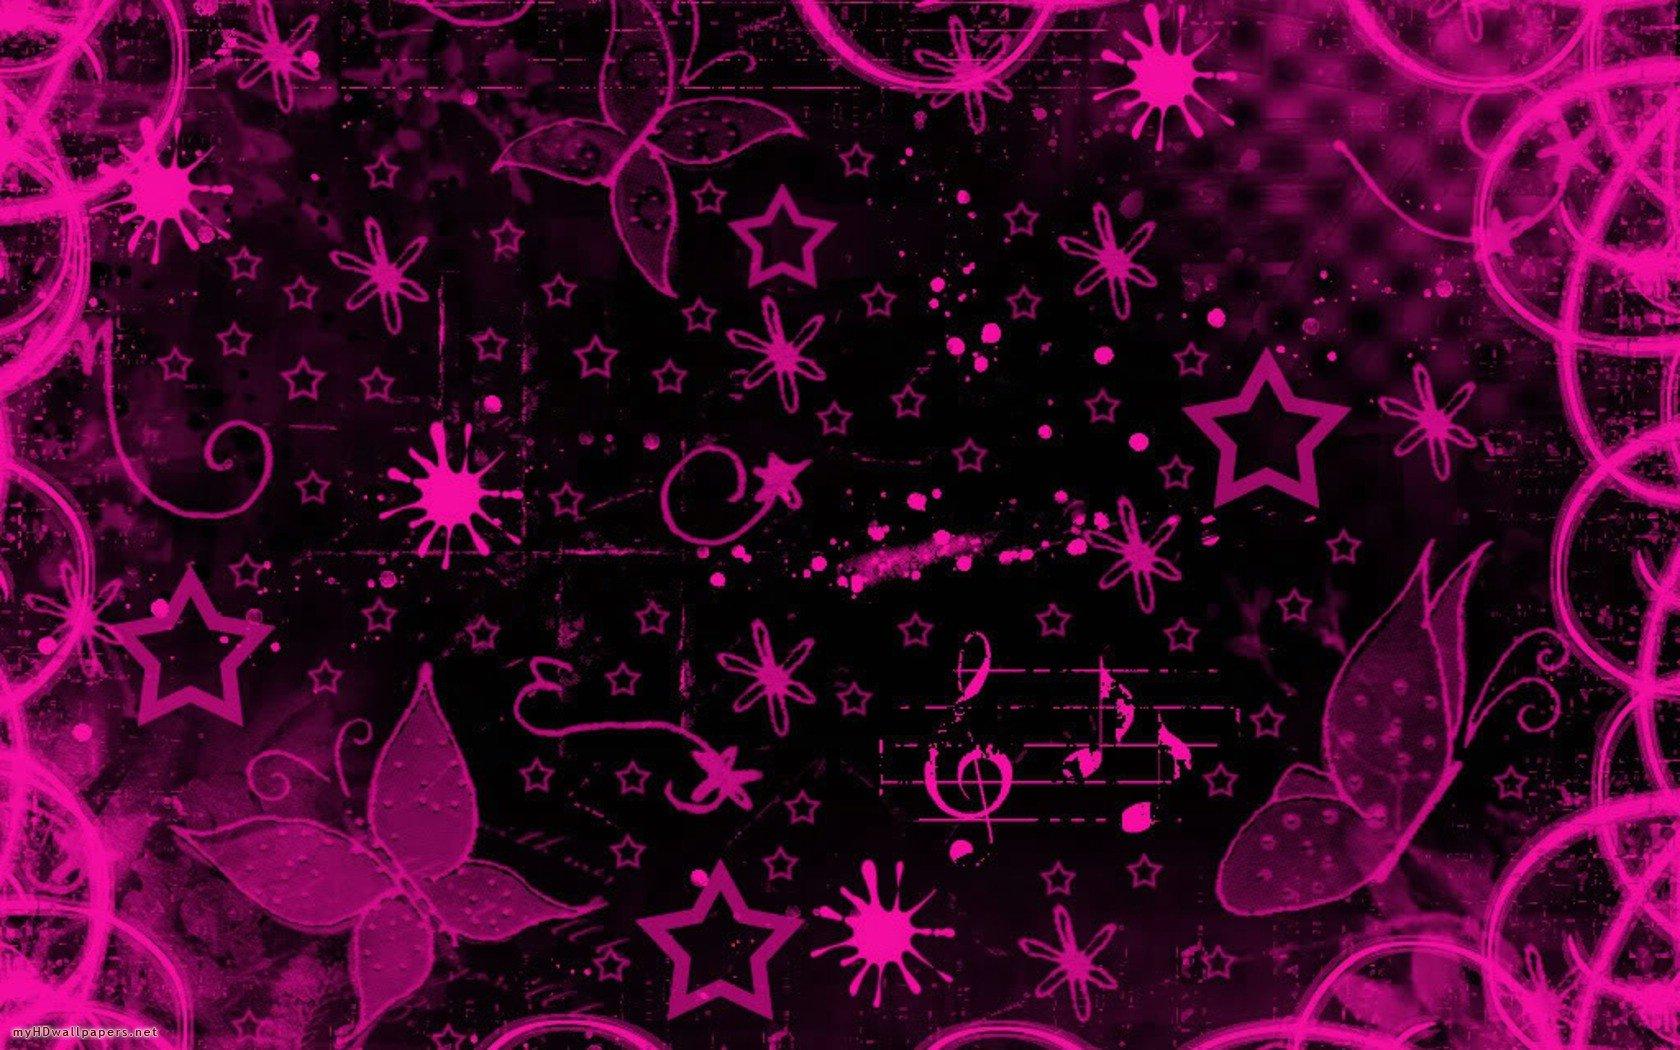 Pink black design   Desktop Wallpaper HD Wallpapers Download and 1680x1050